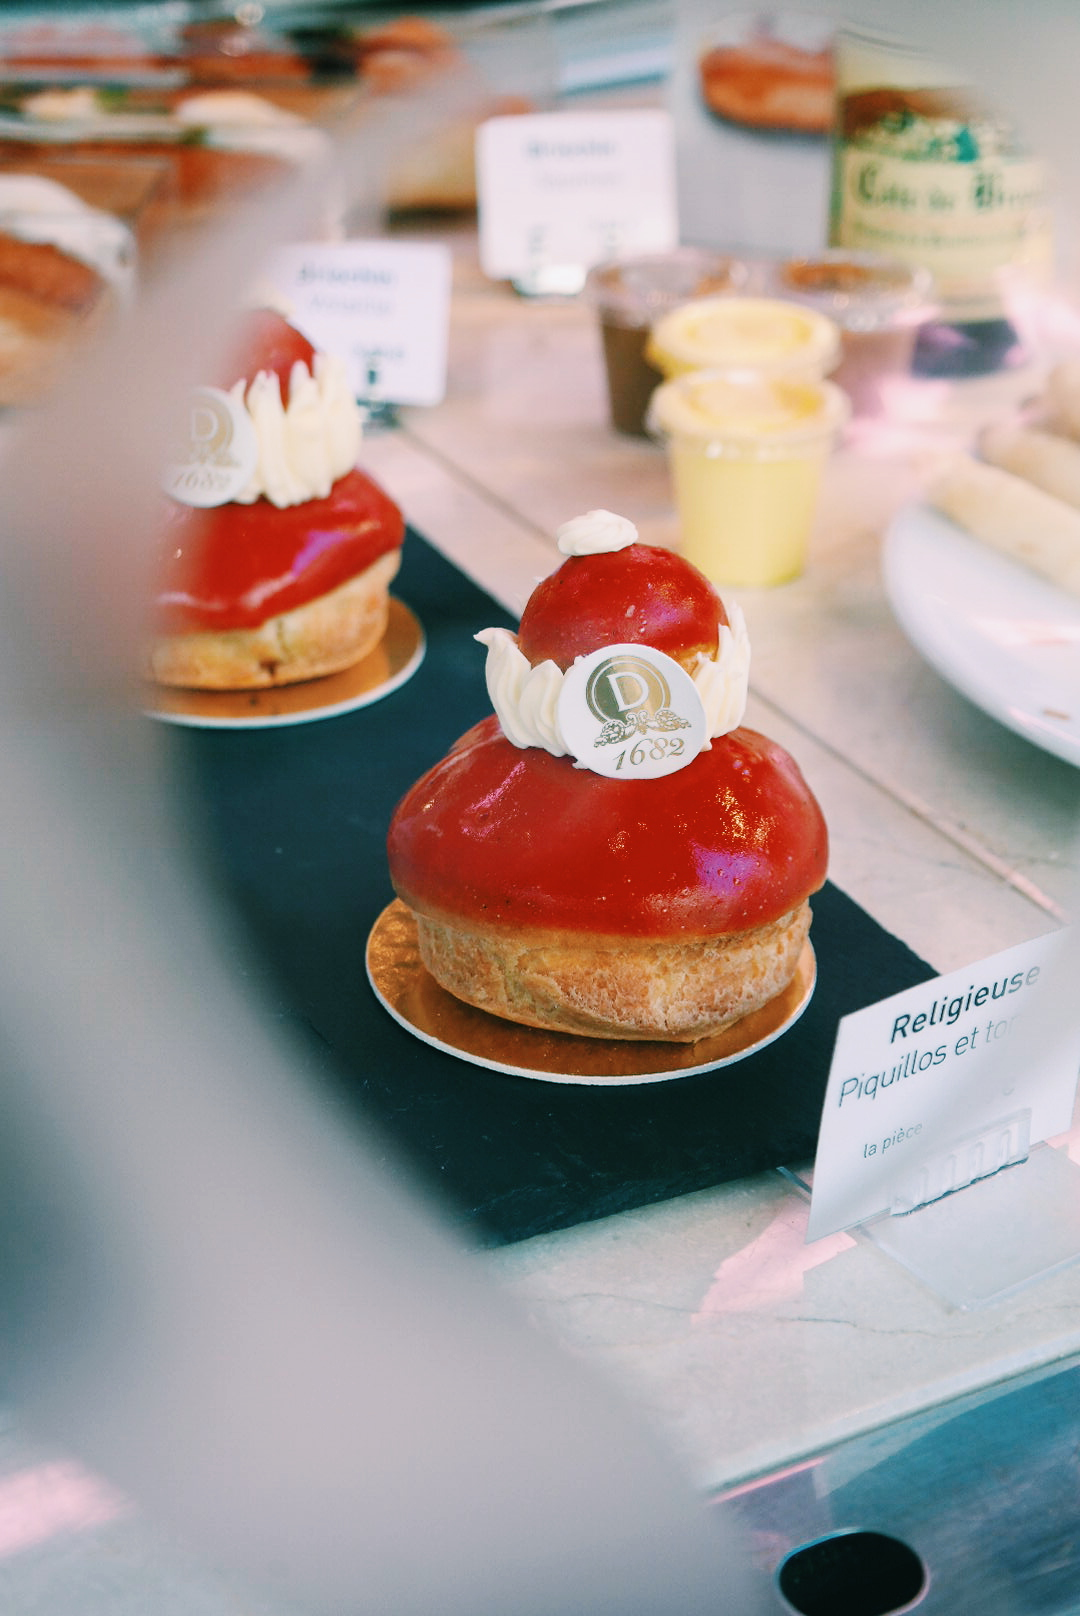 Religieuse-salée-par-Dalloyau-Paris-chou-glacé-tomate-piquillos-crème-mascarpone-à-la-tomate-petit-chou-à-la-crème-de-pesto-dégustation-Rue-du-Bac-Sucré-photo-by-united-states-of-paris-blog